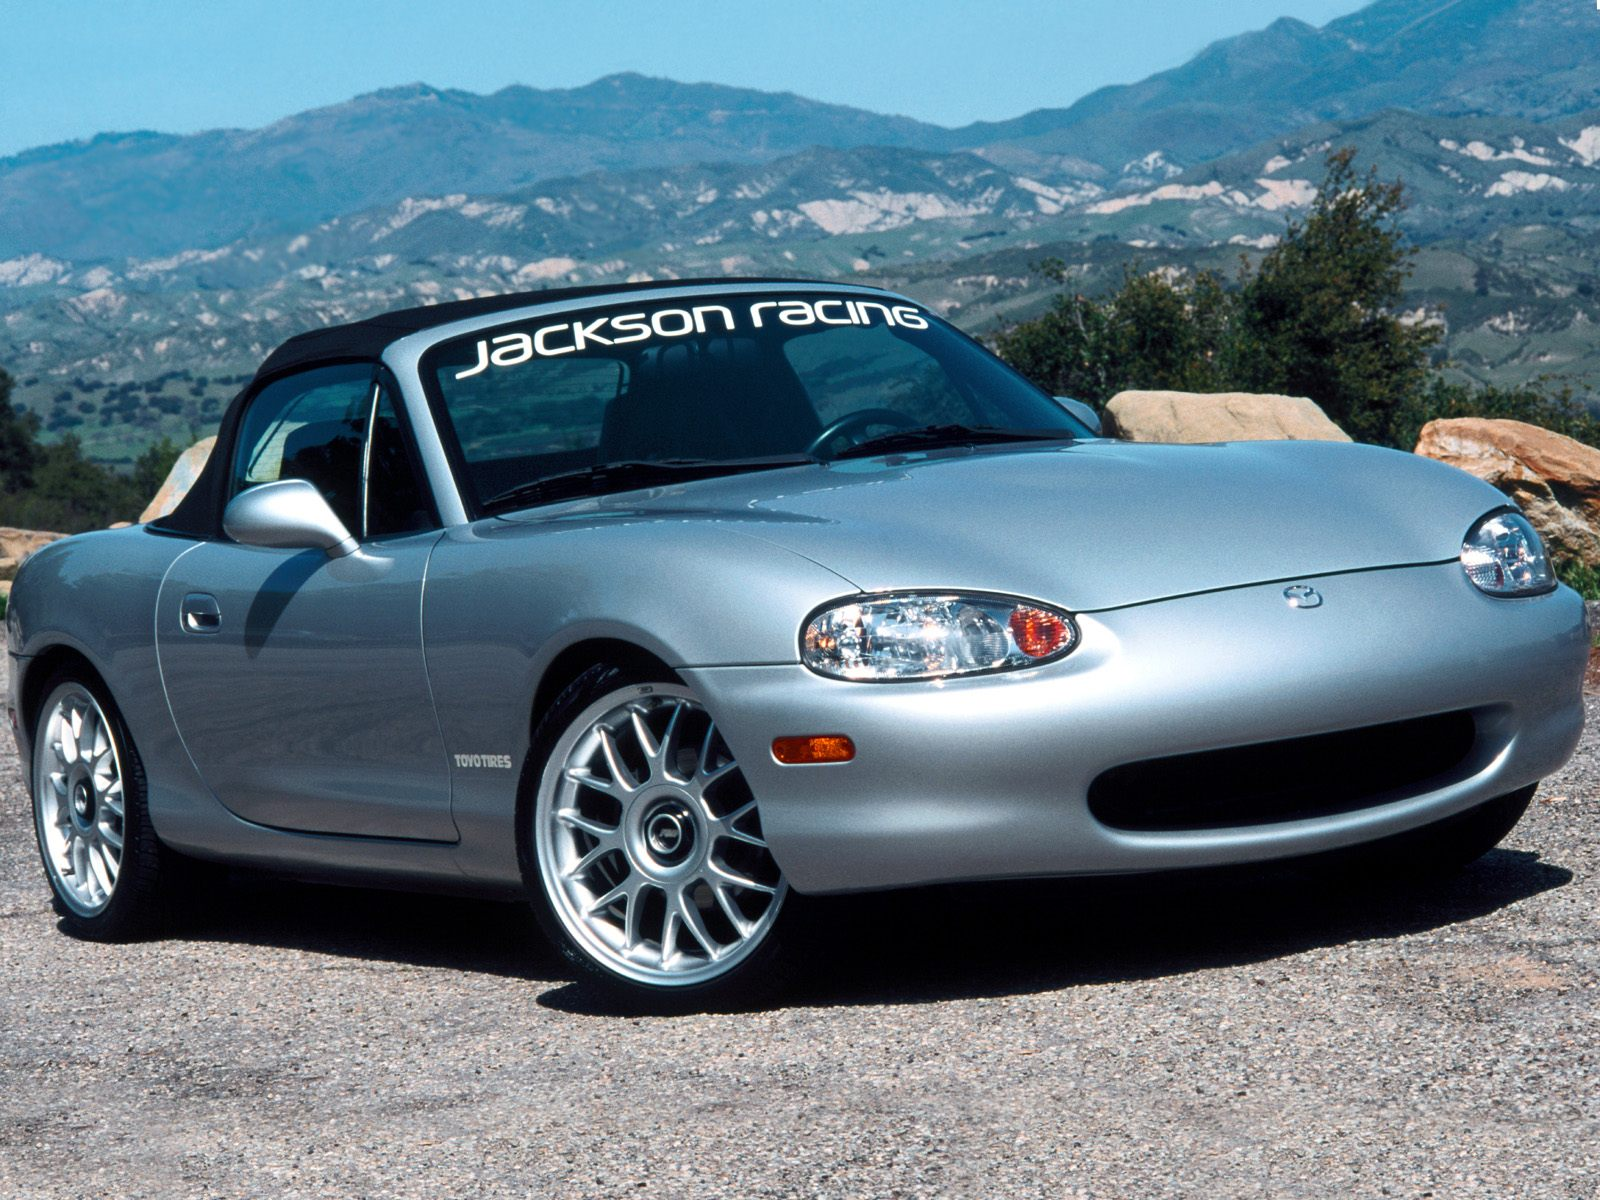 hight resolution of repair manual mazda miata 1997 wiring diagram when trying to locate a component in a wiring diagram and you don t know the specific system where it is